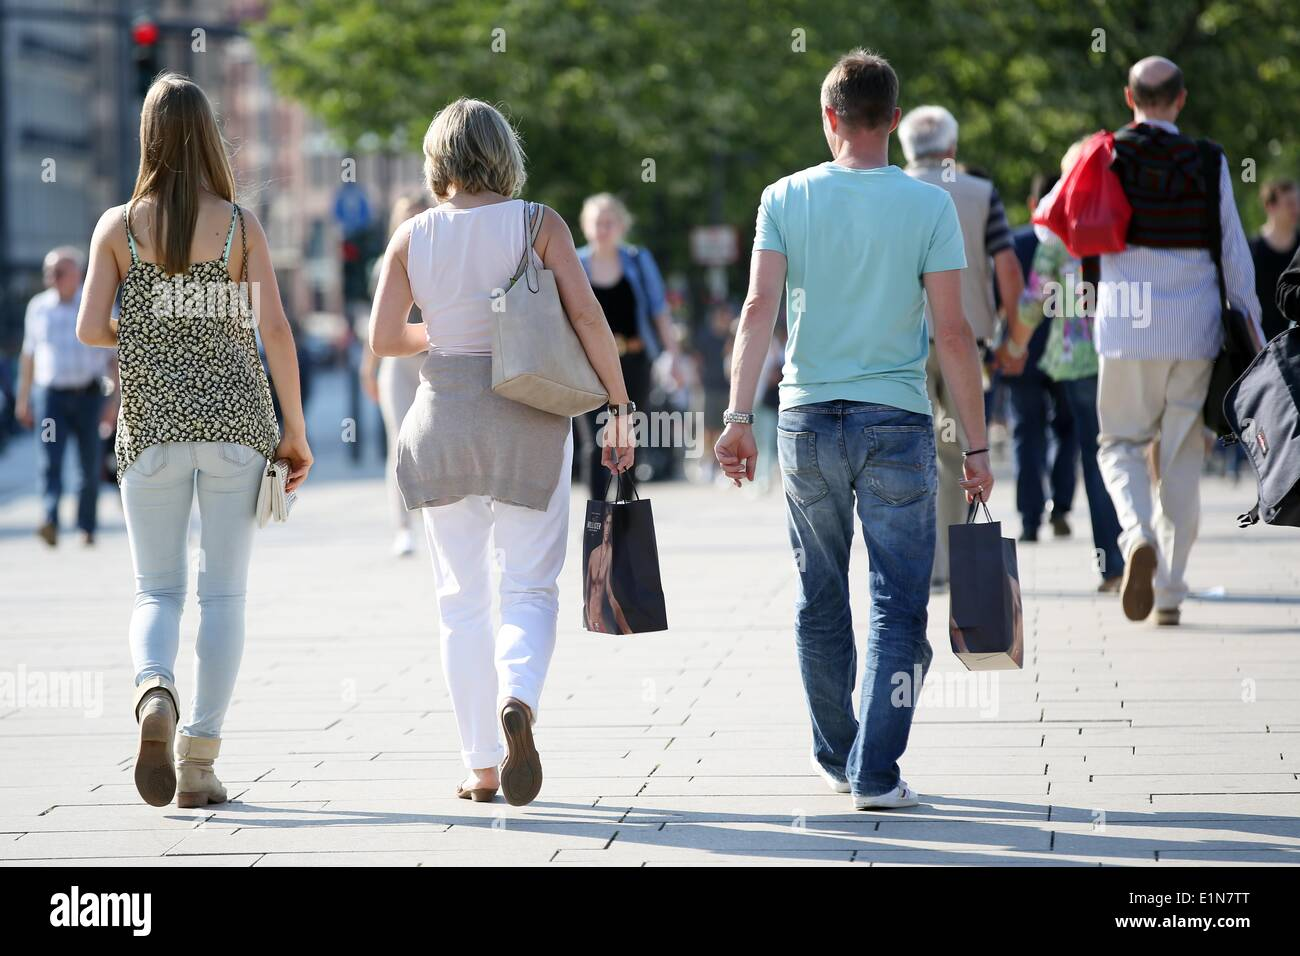 Hamburg, Germany. 06th June, 2014. People walk with shopping bags through the inner city in Hamburg, Germany, 06 June 2014. The sunny weather puts retailers in good moods. The weather is good, the stocks are there and the customers are buying. Photo: BODO MARKS/dpa/Alamy Live News - Stock Image